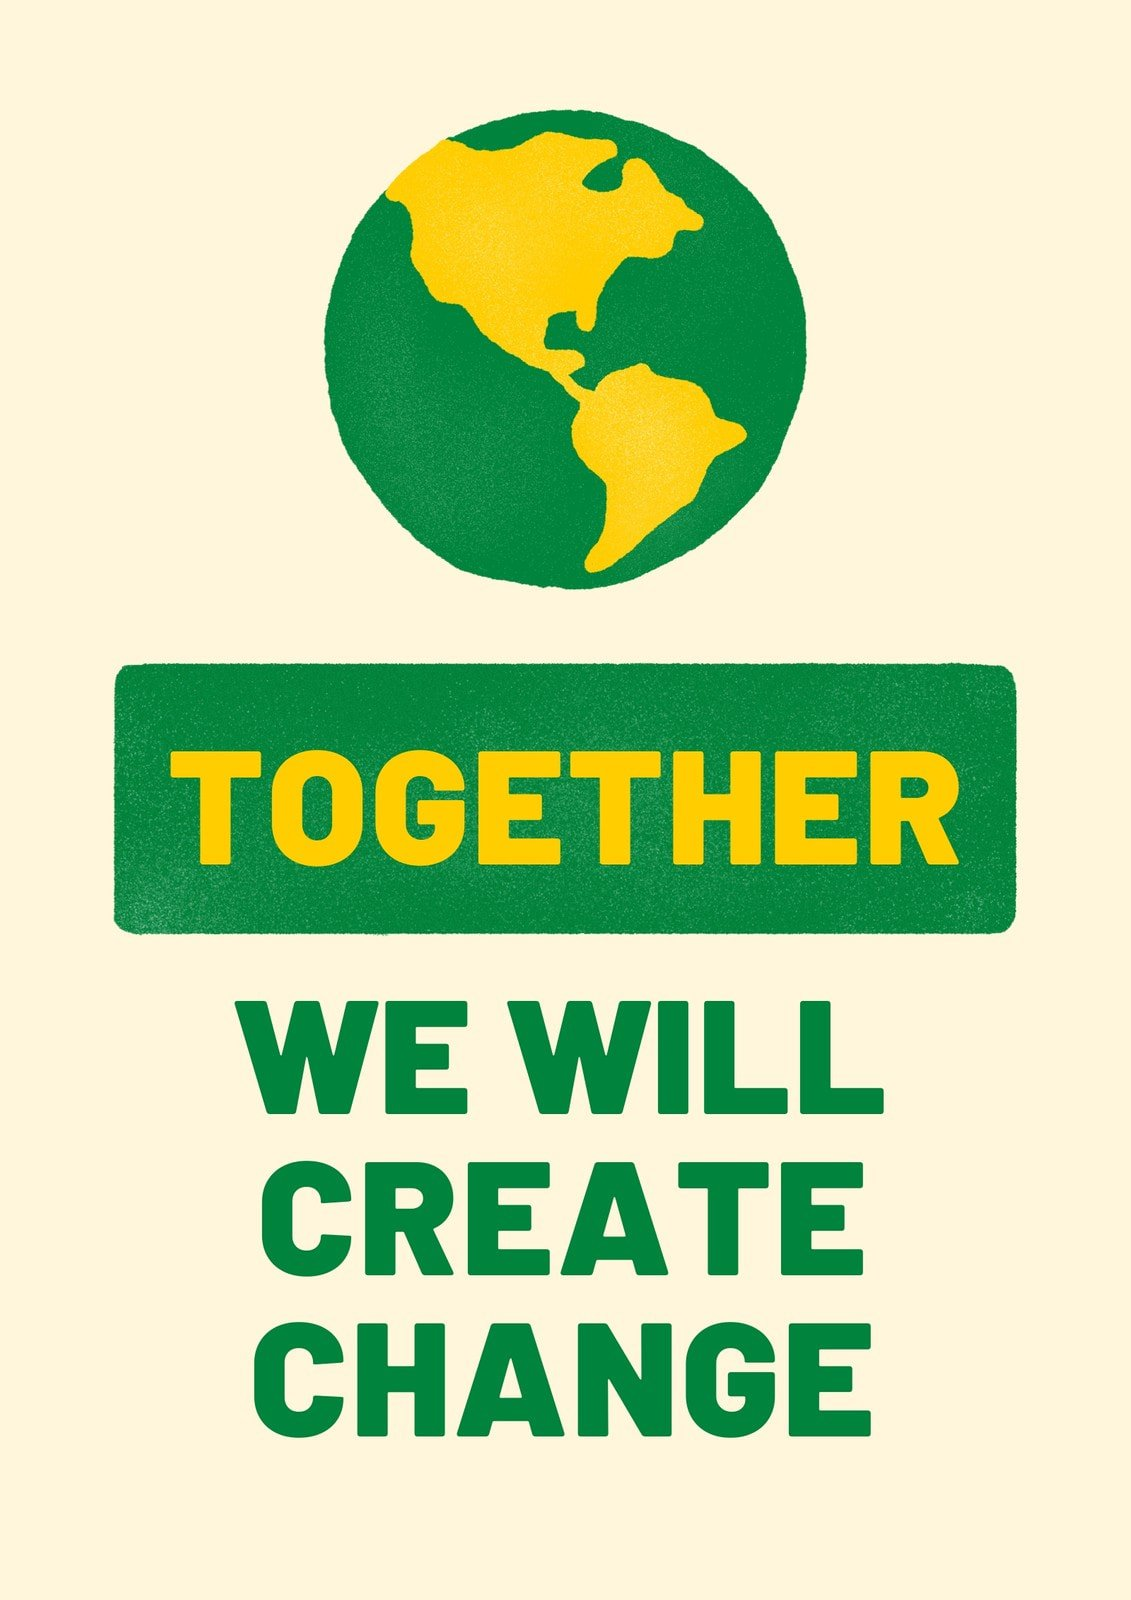 Fire relief - Together we will create change poster